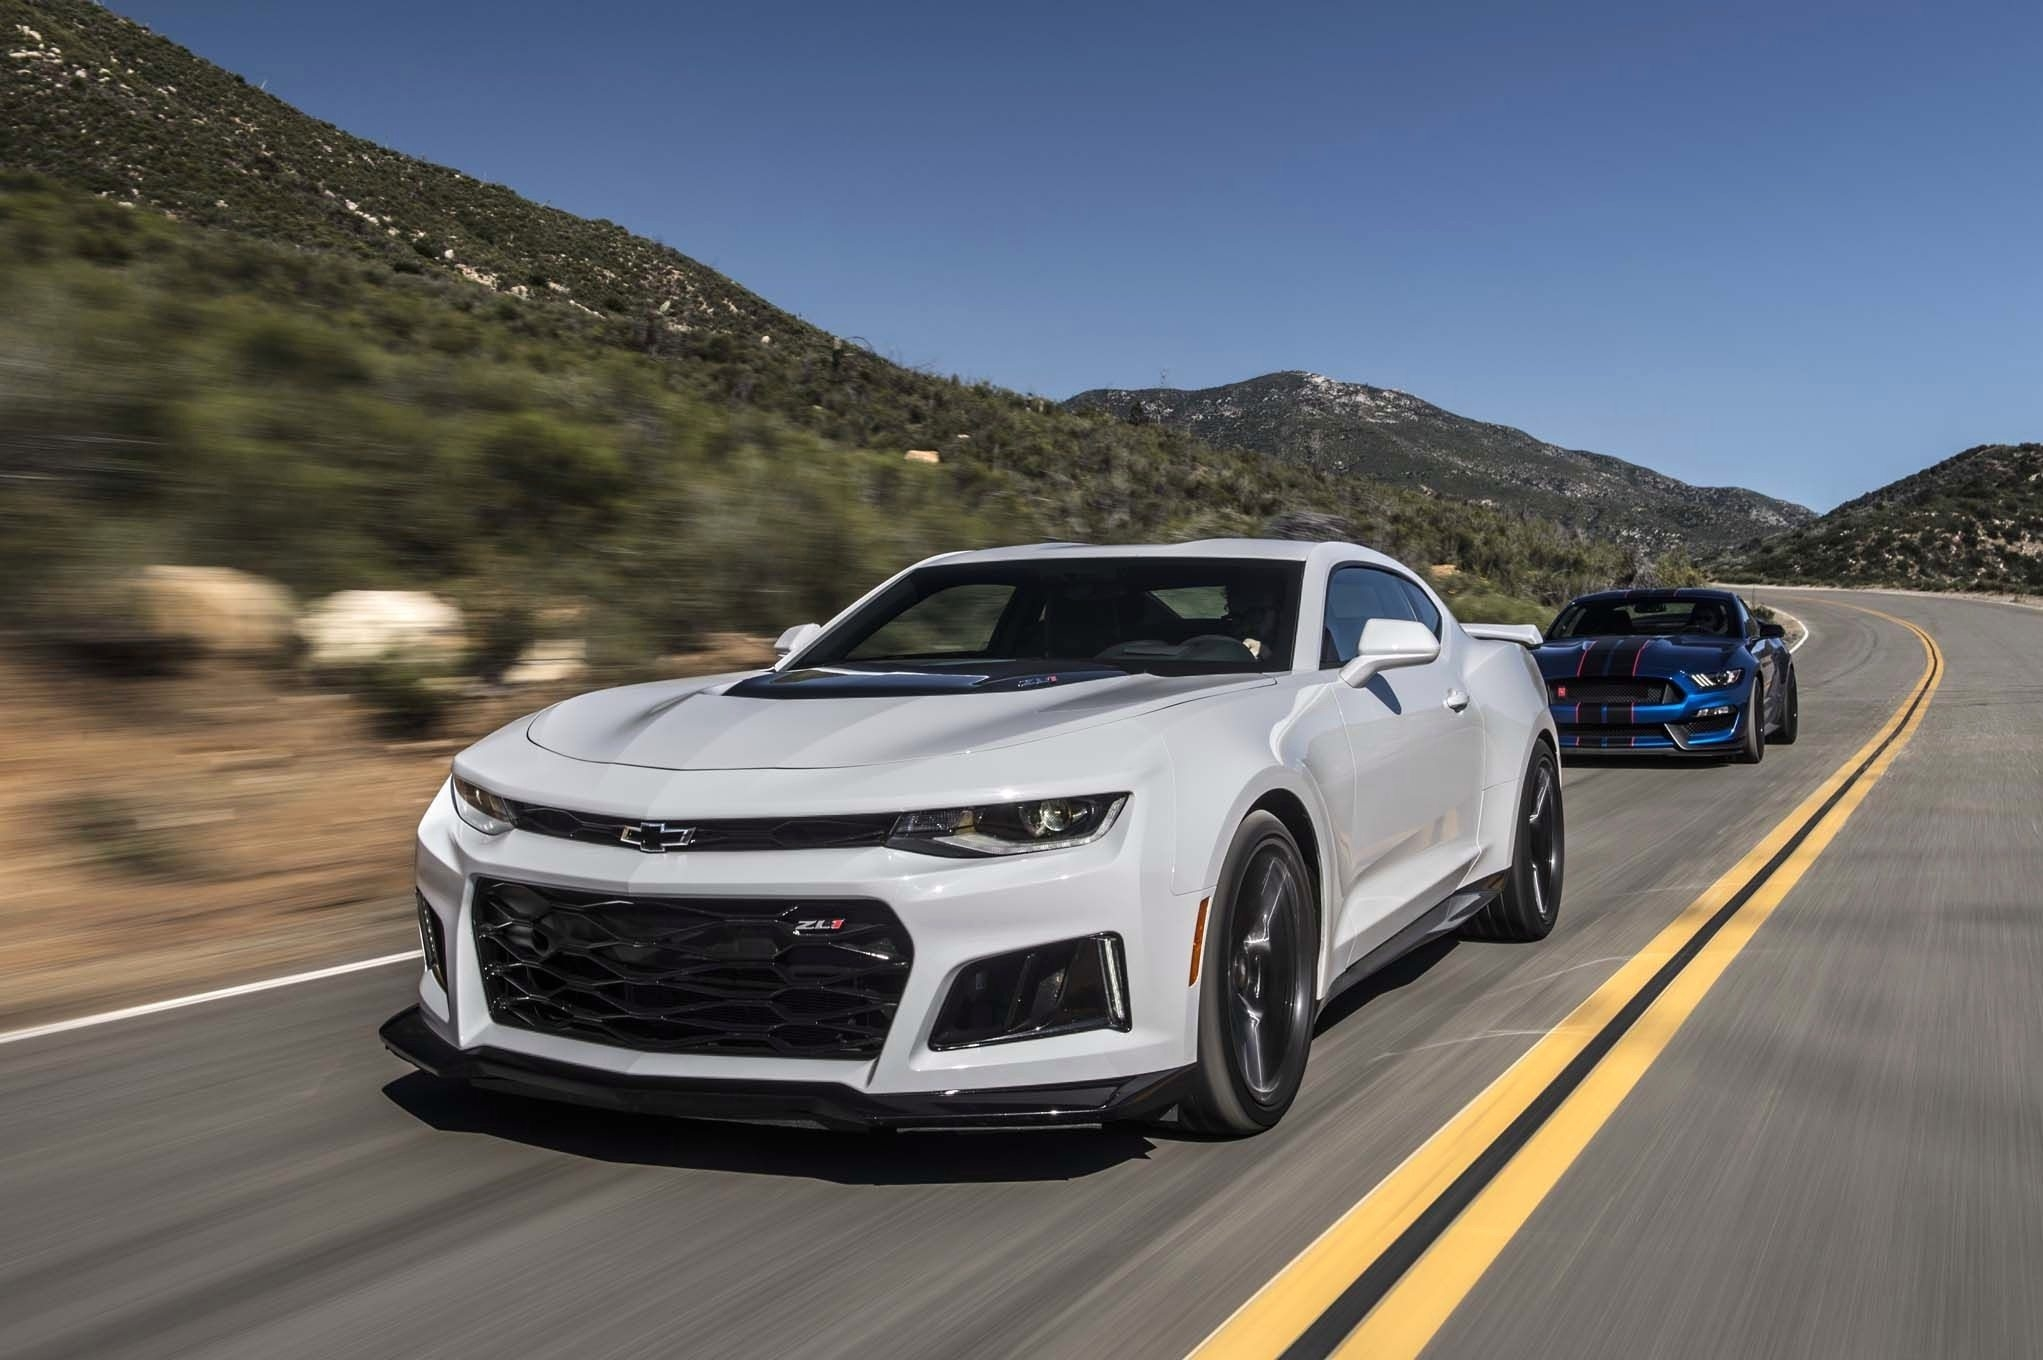 43 The Best 2020 The Camaro Ss Review and Release date